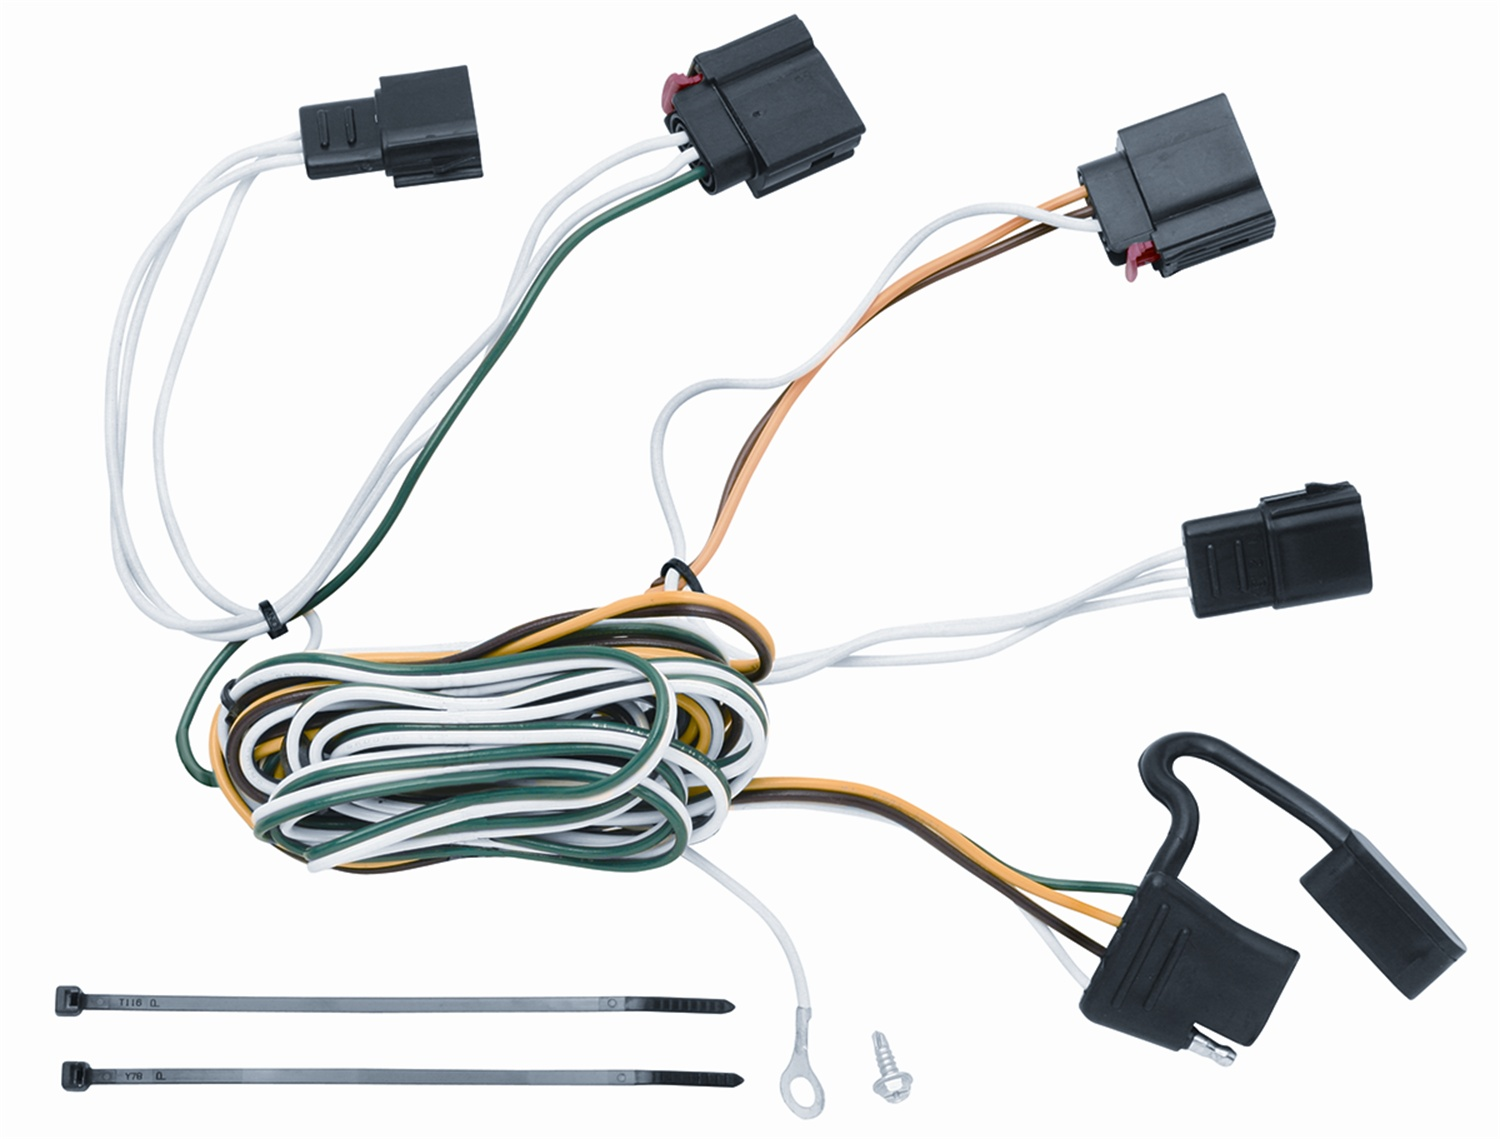 Xj Trailer Wiring Harness on trailer plugs, trailer generator, trailer brakes, trailer mounting brackets, trailer fuses, trailer hitch harness,